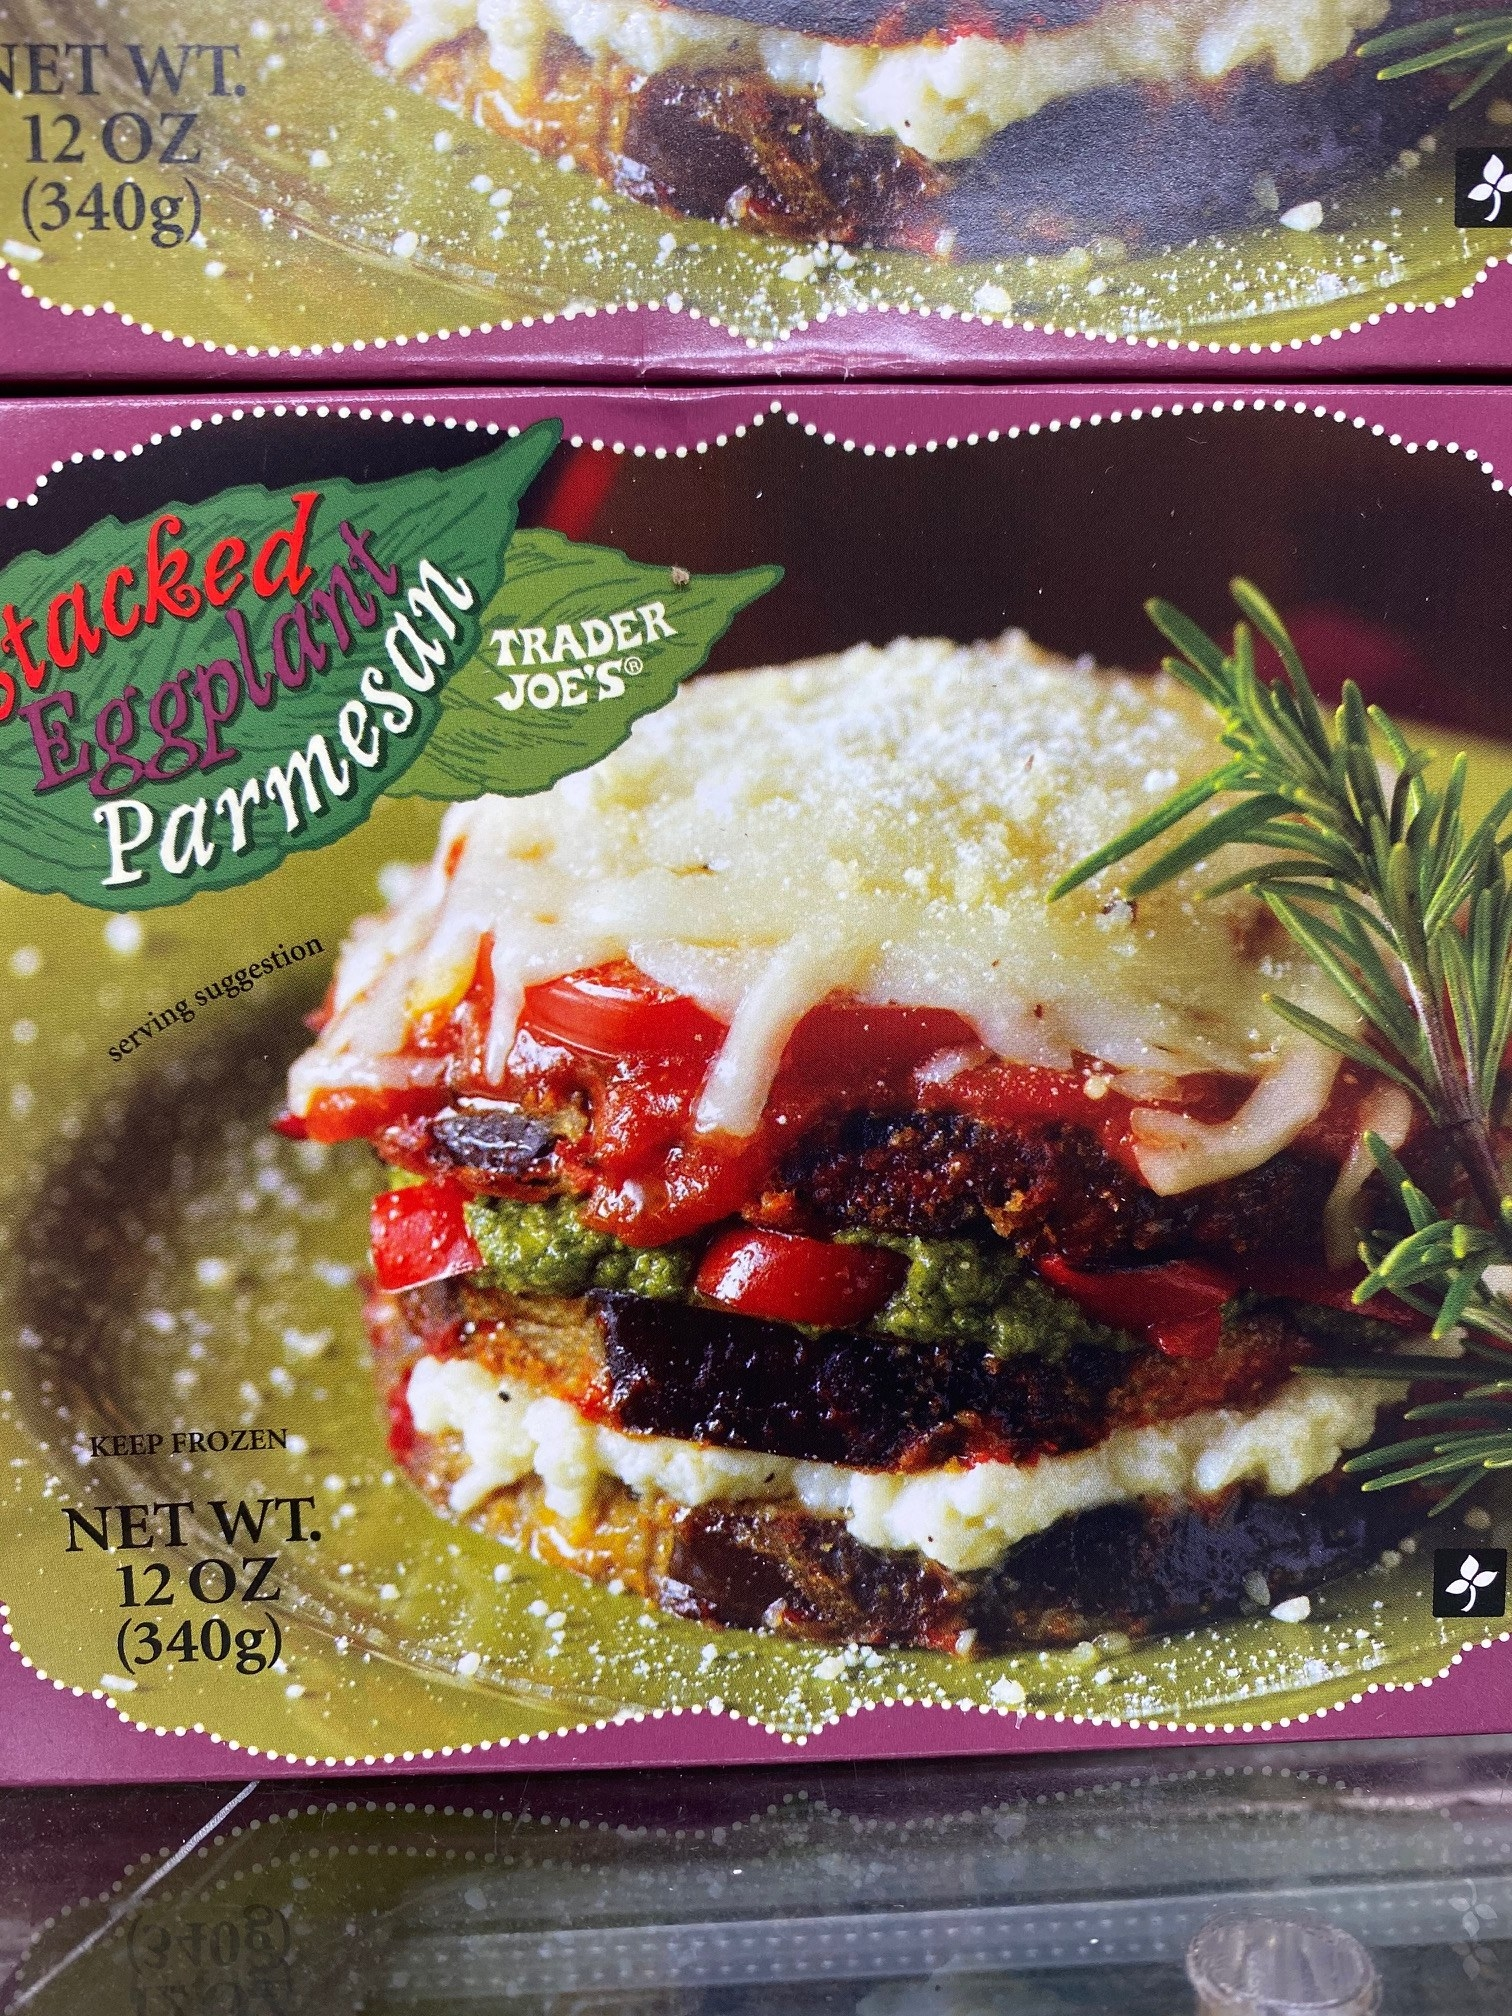 A box of frozen stacked eggplant parmesan from Trader Joe's.